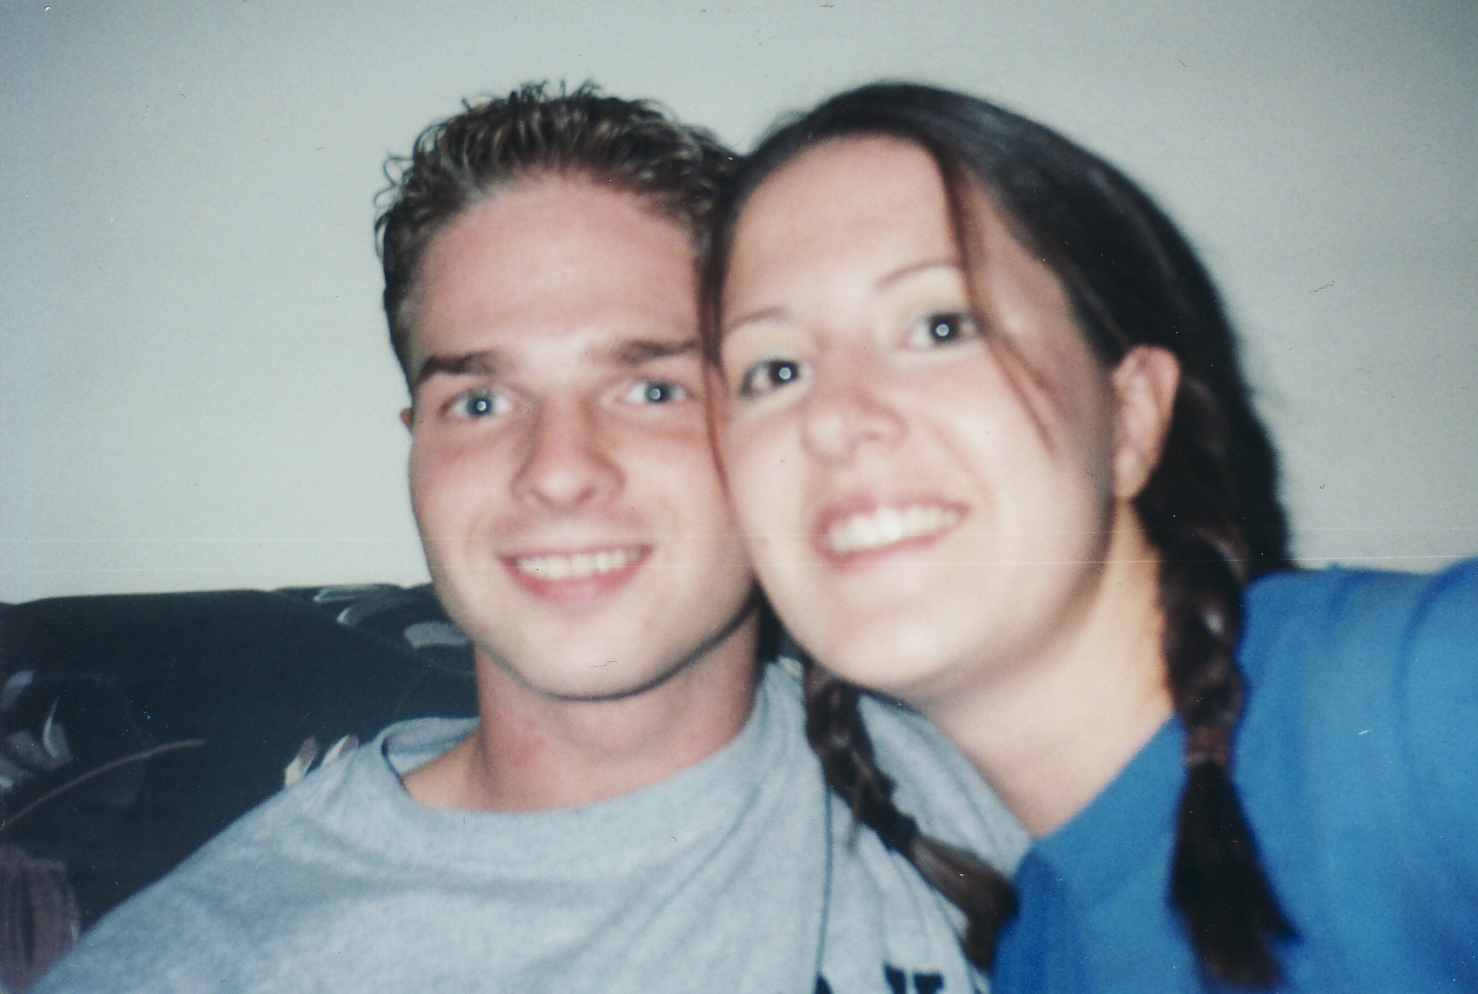 Me and Kristi, not long before graduation in 2001.